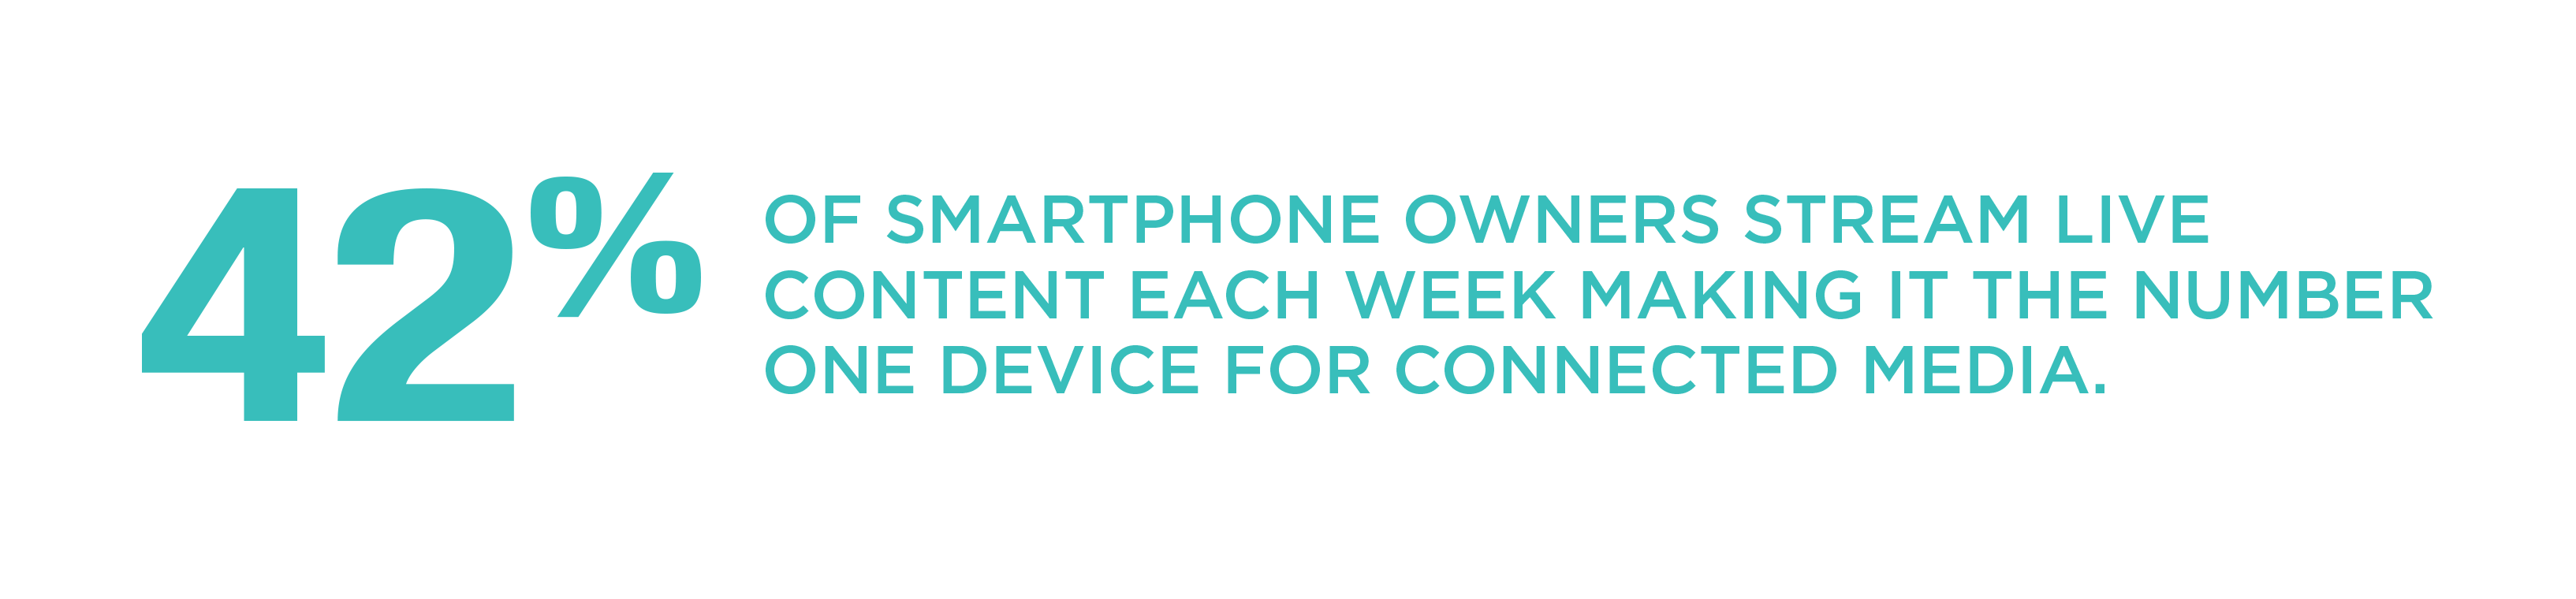 42% of smartphone owners stream live content each week making it the number one device for connected media.